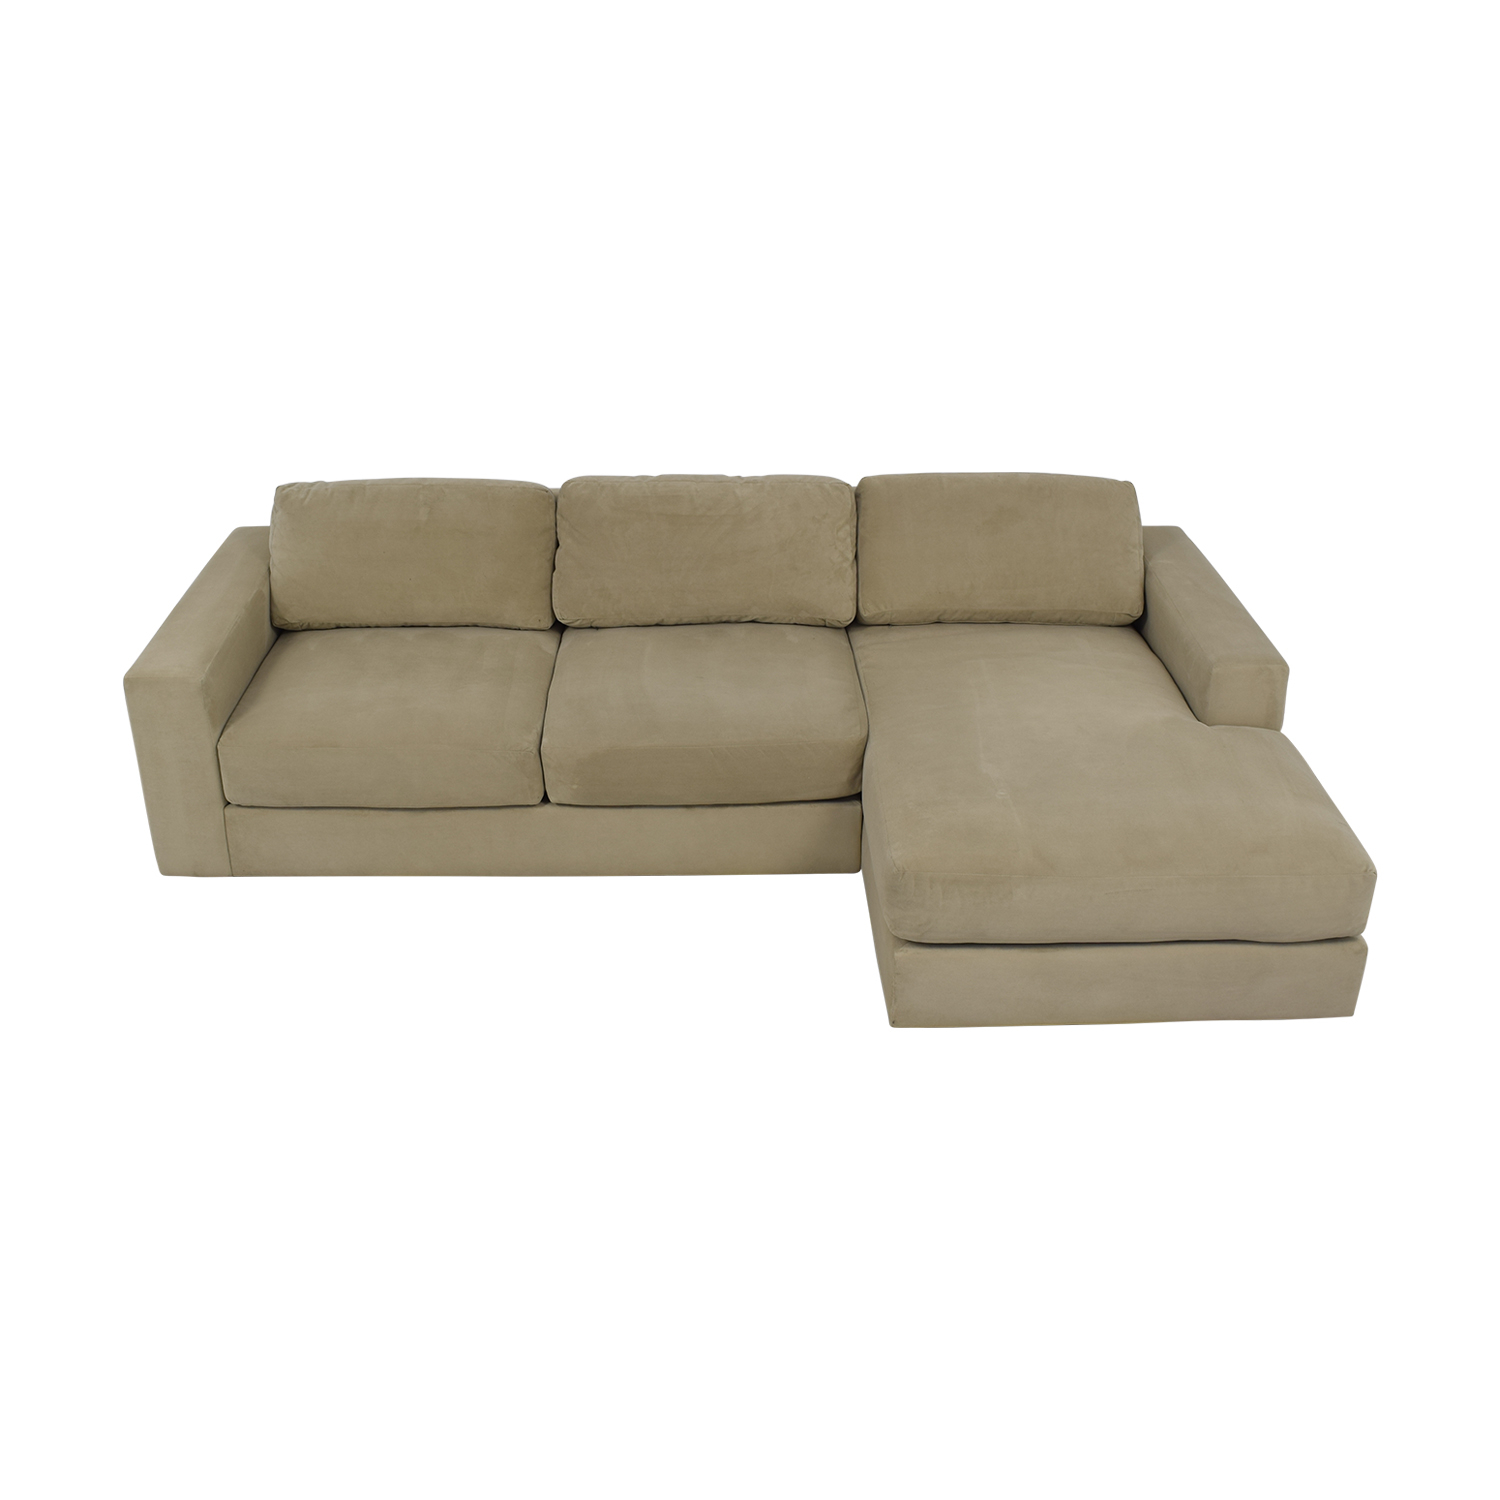 69% Off – West Elm West Elm Urban Chaise Sectional Sofa Within West Elm Sectional Sofas (View 10 of 15)